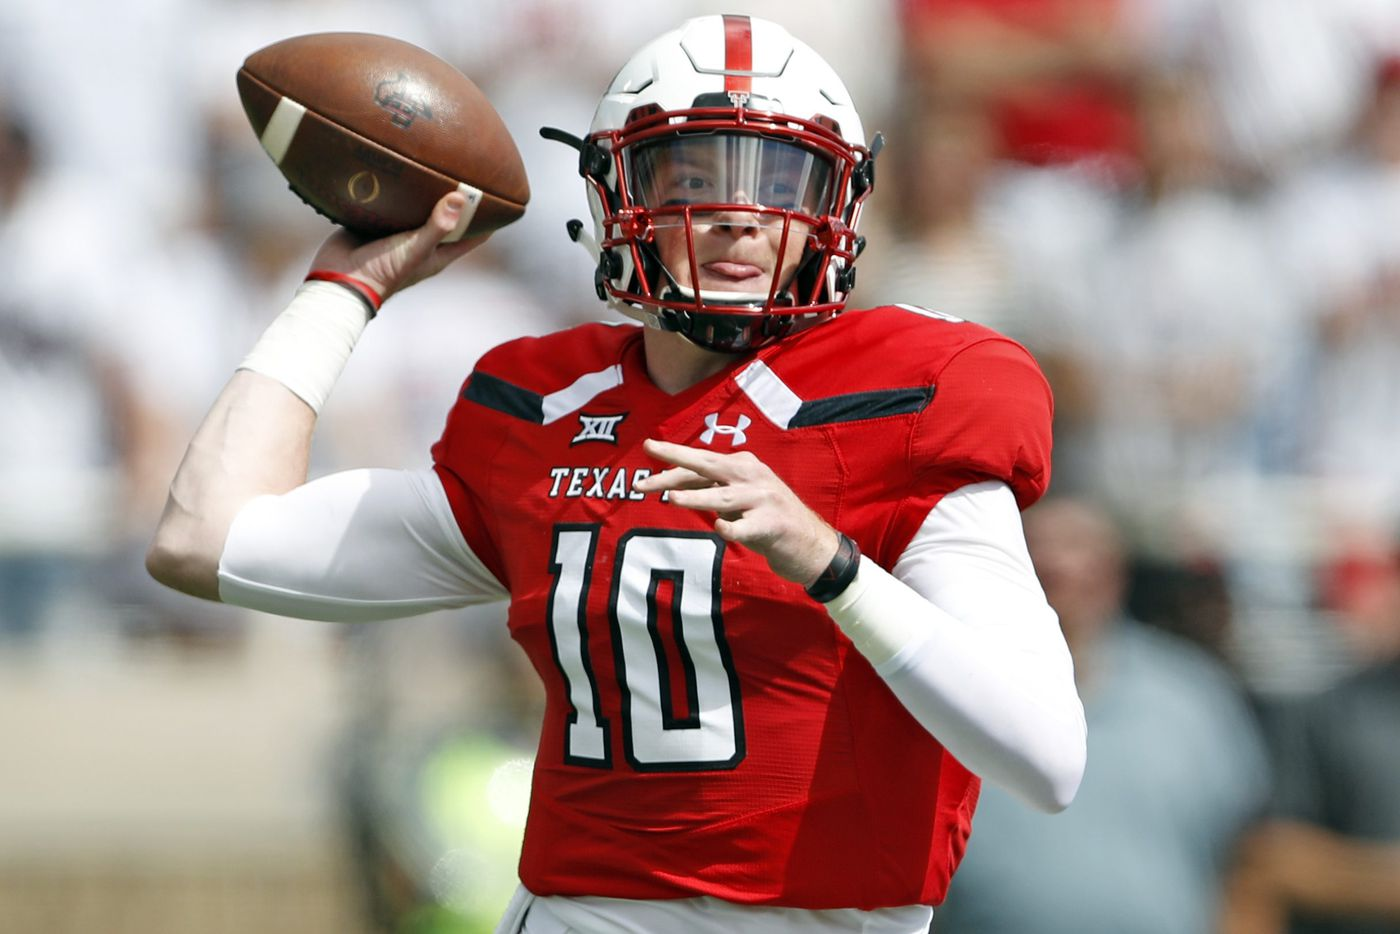 College football preview: Texas Tech sensation Alan Bowman has local roots